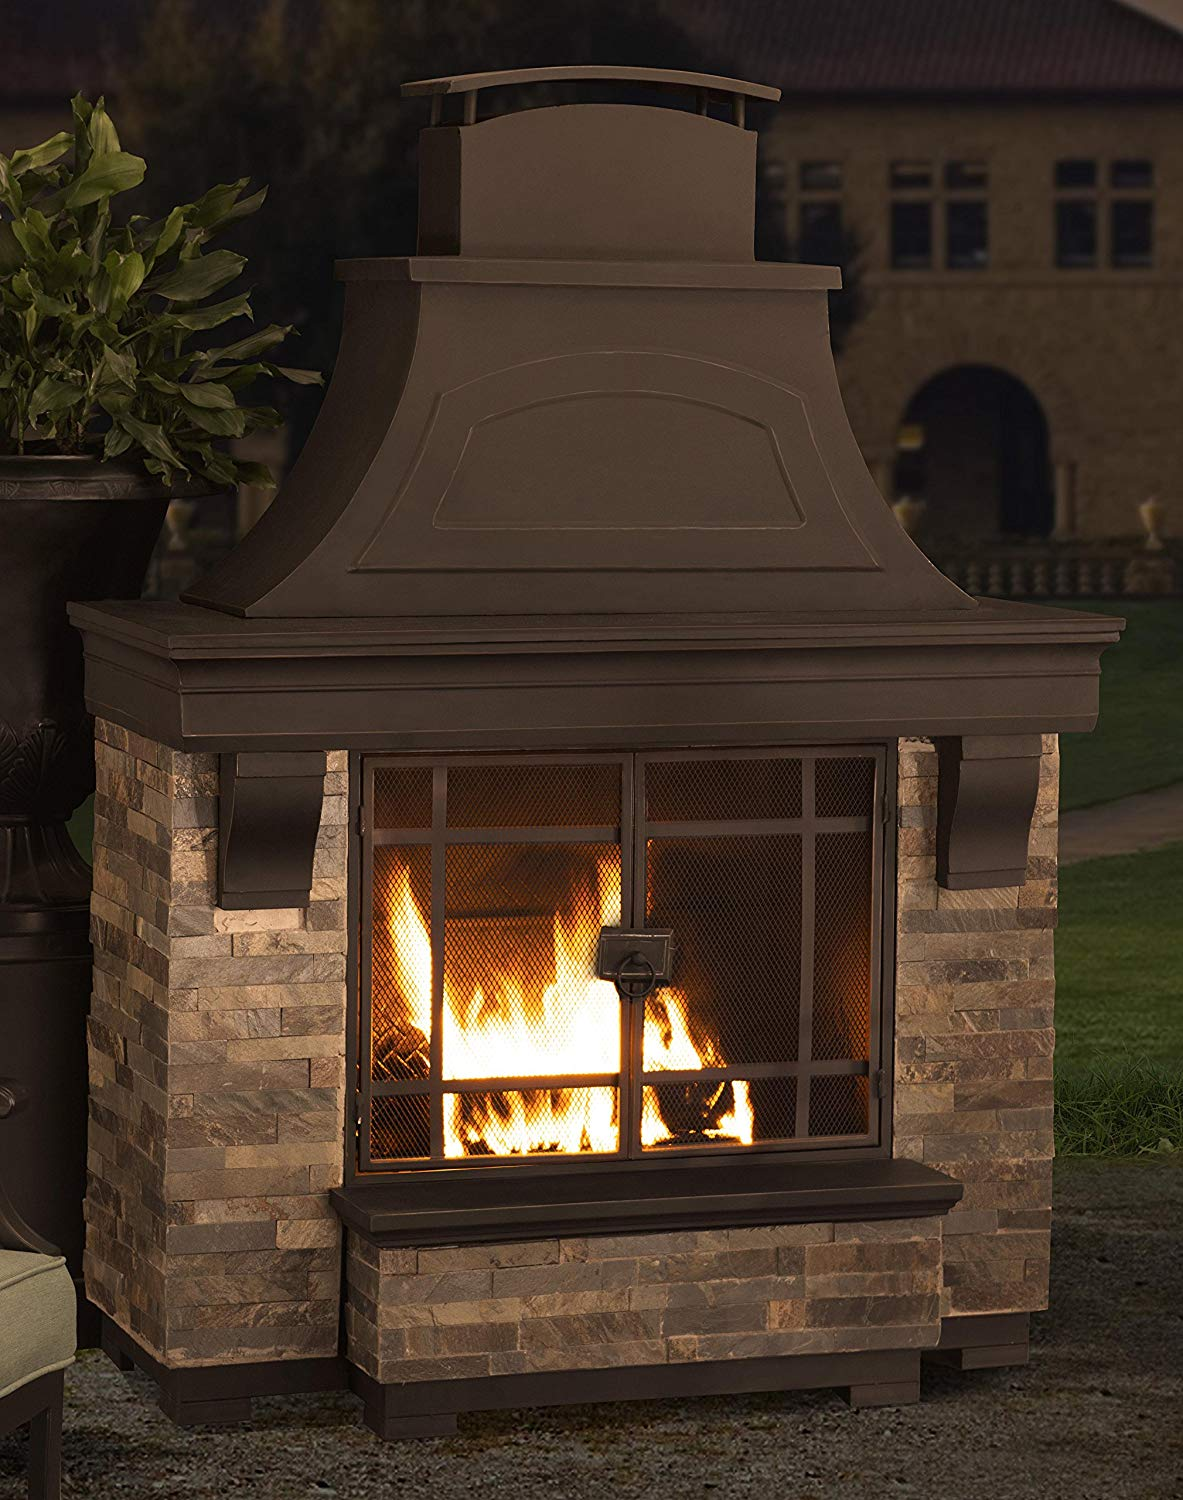 Outdoor Fireplace Kits The Perfect Addition To Your Patio